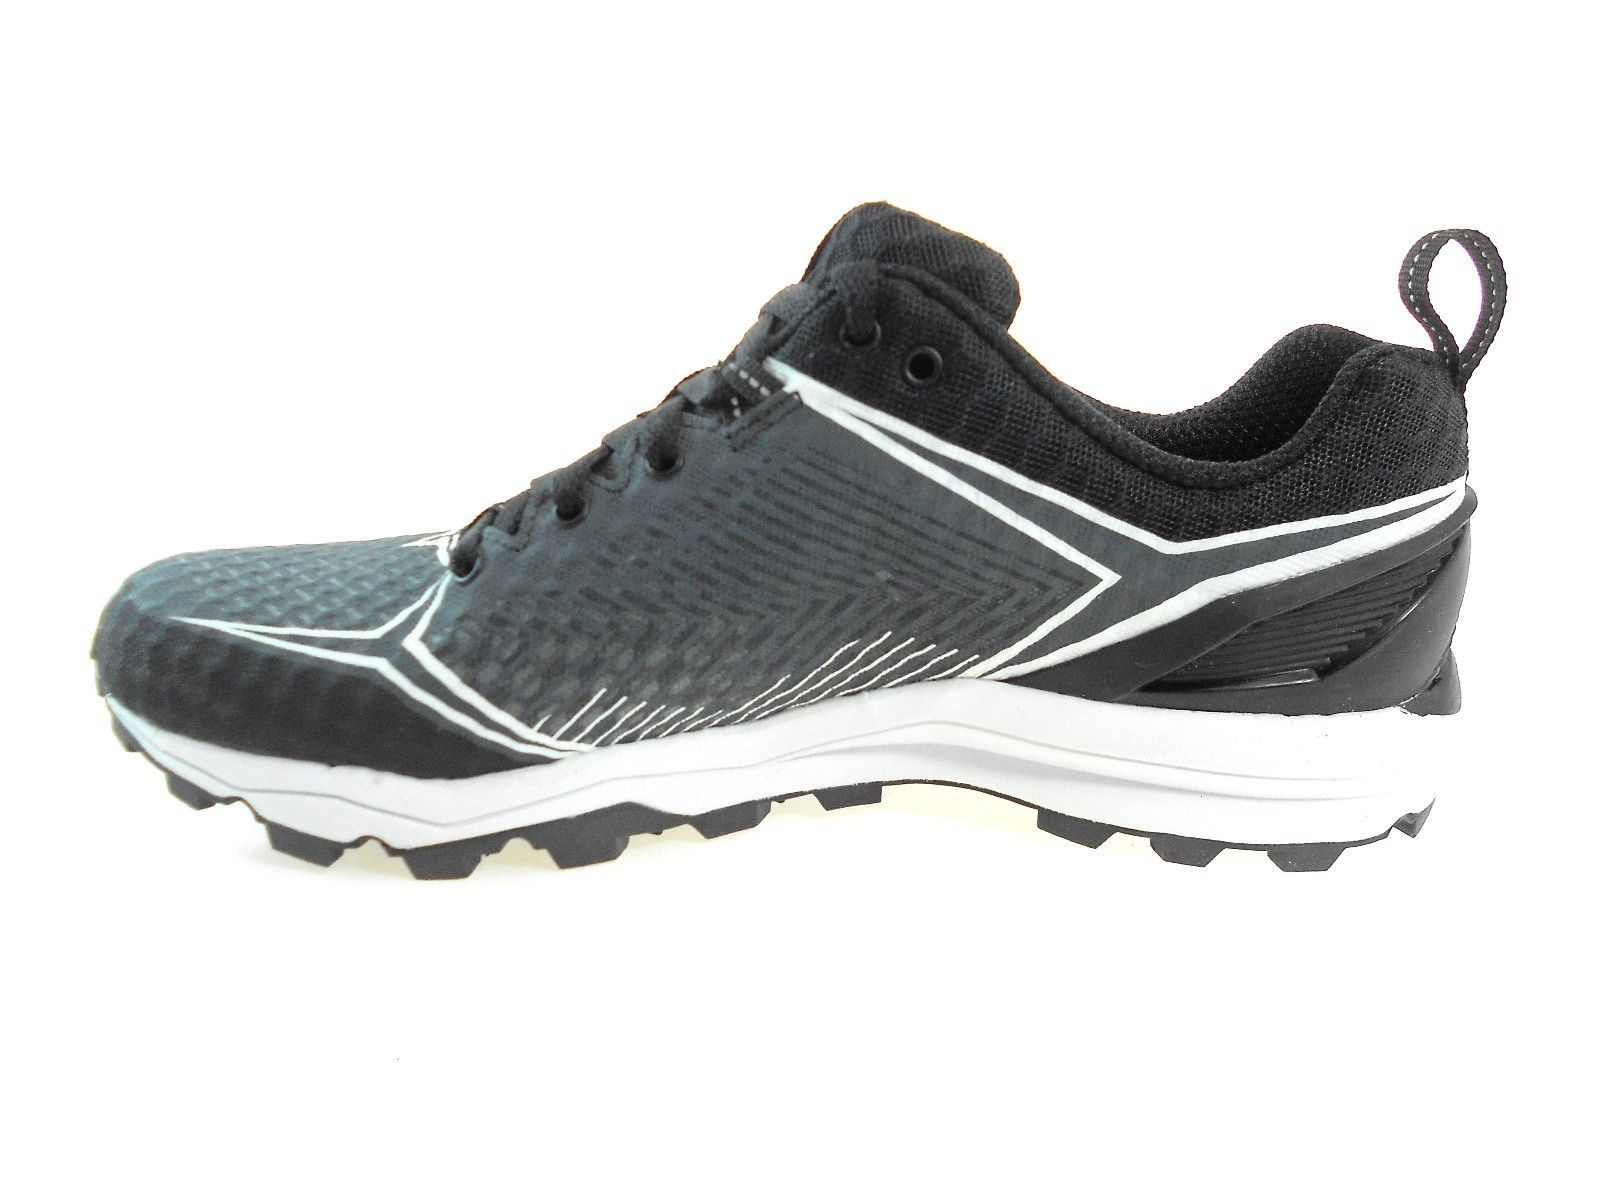 MERRELL ALL OUT CRUSH SHIELD WOMEN'S BLACK/GRANITE lightweight SHOES #J36908